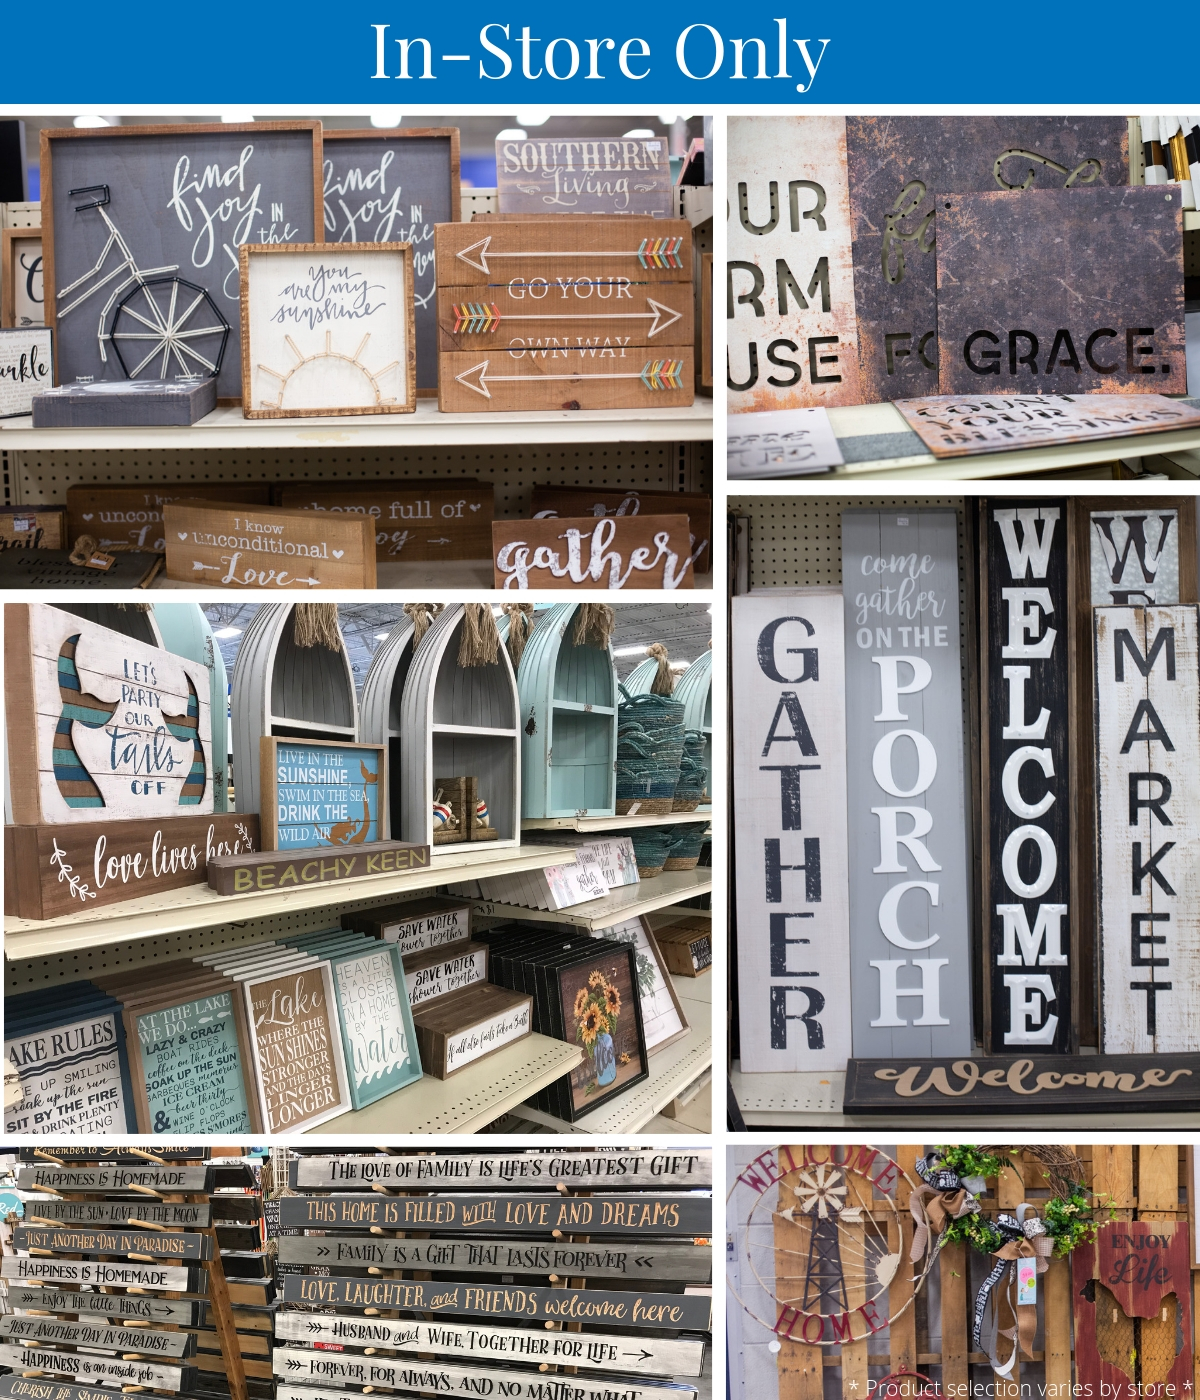 Make sure to visit carolina pottery regularly at one of our four locations to keep up with our newest items